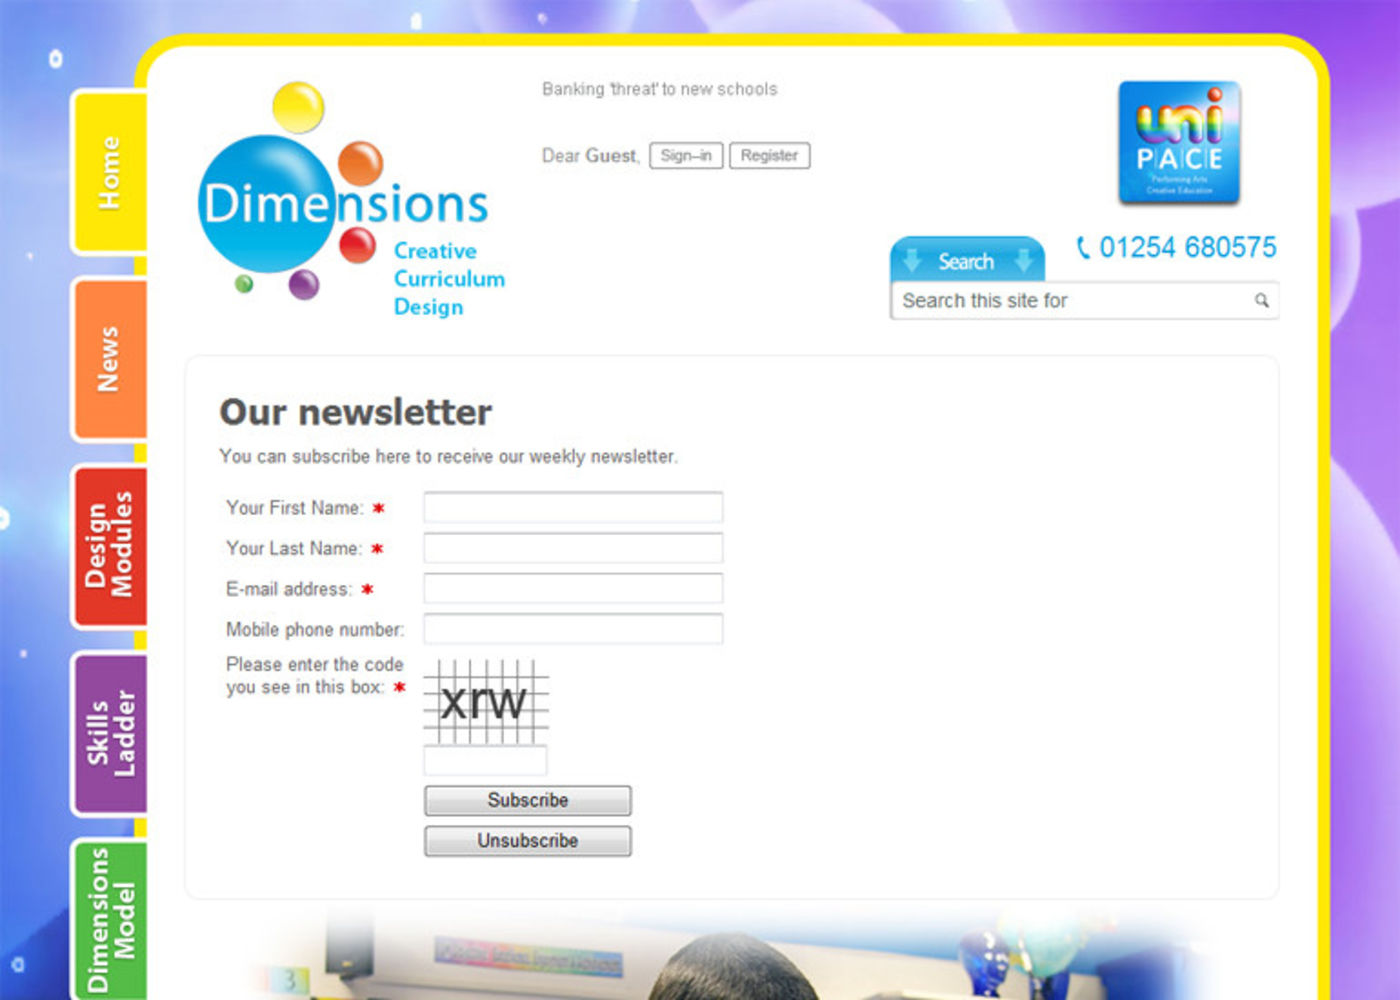 Dimensions Creative Curriculum Our newsletter